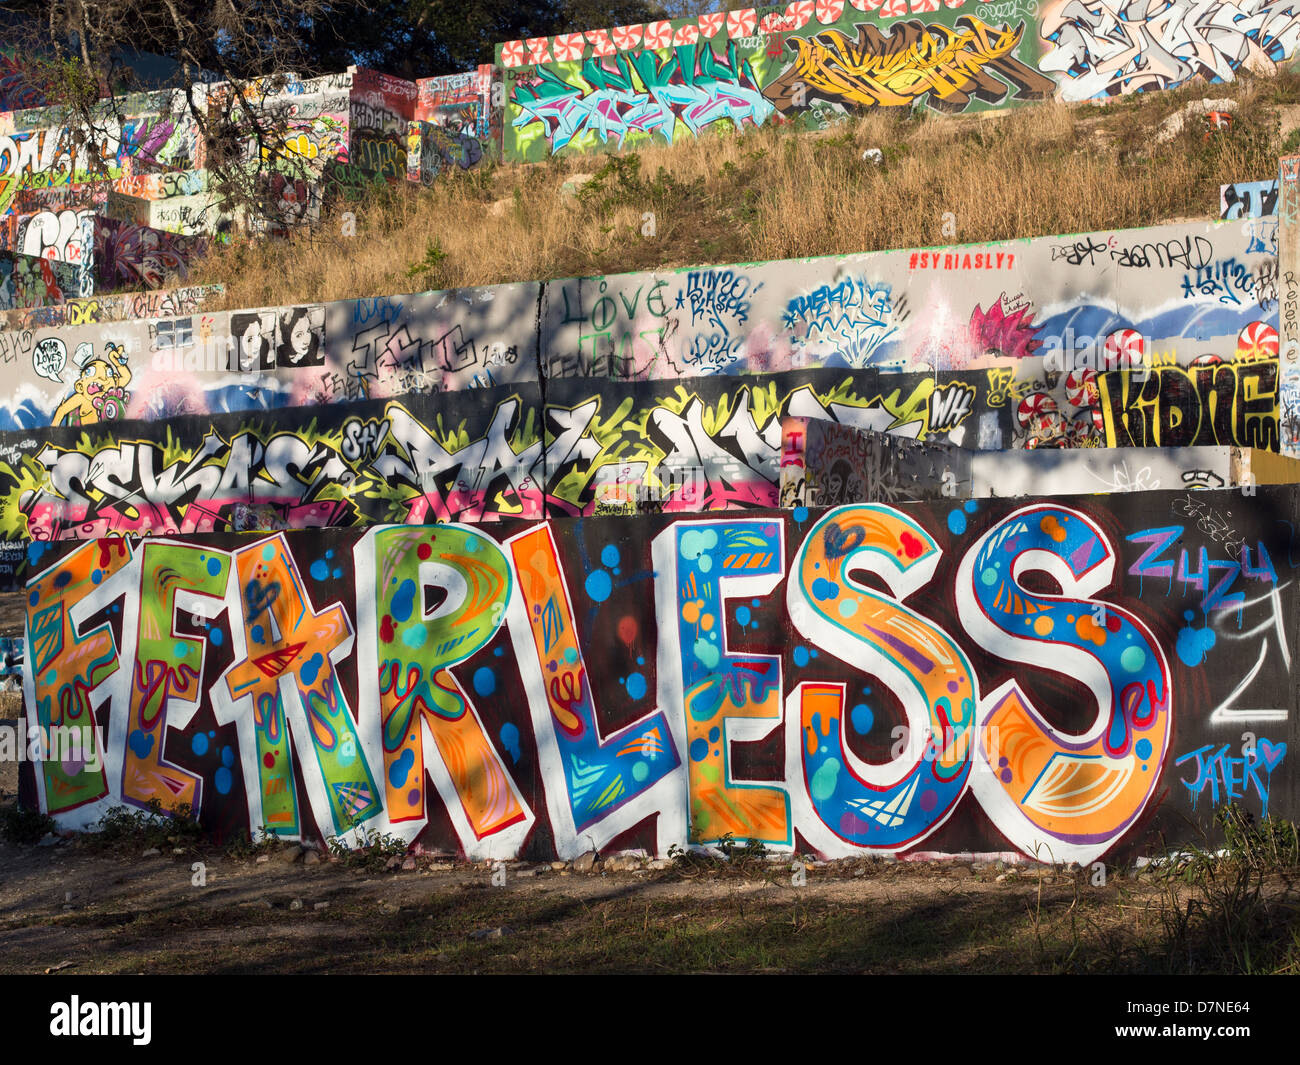 FEARLESS graffiti in Austin, Texas - Stock Image